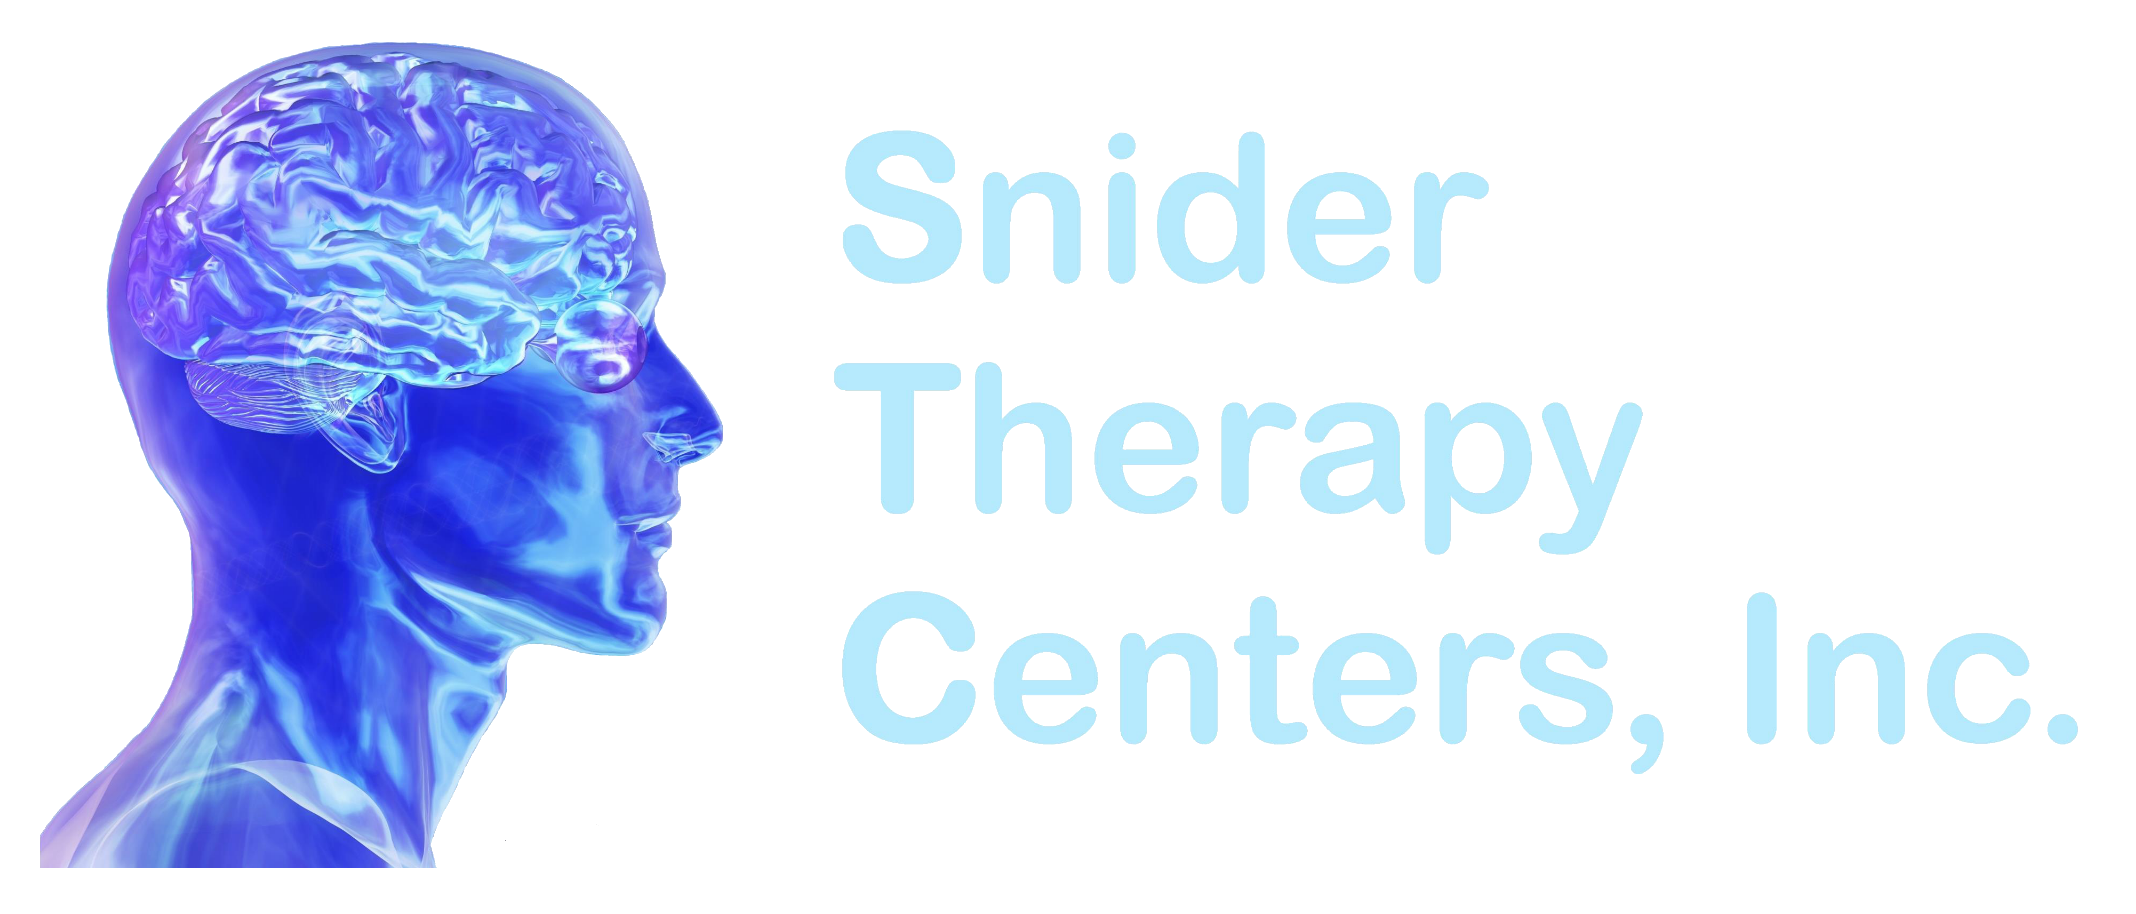 Snider Therapy Centers, Inc.